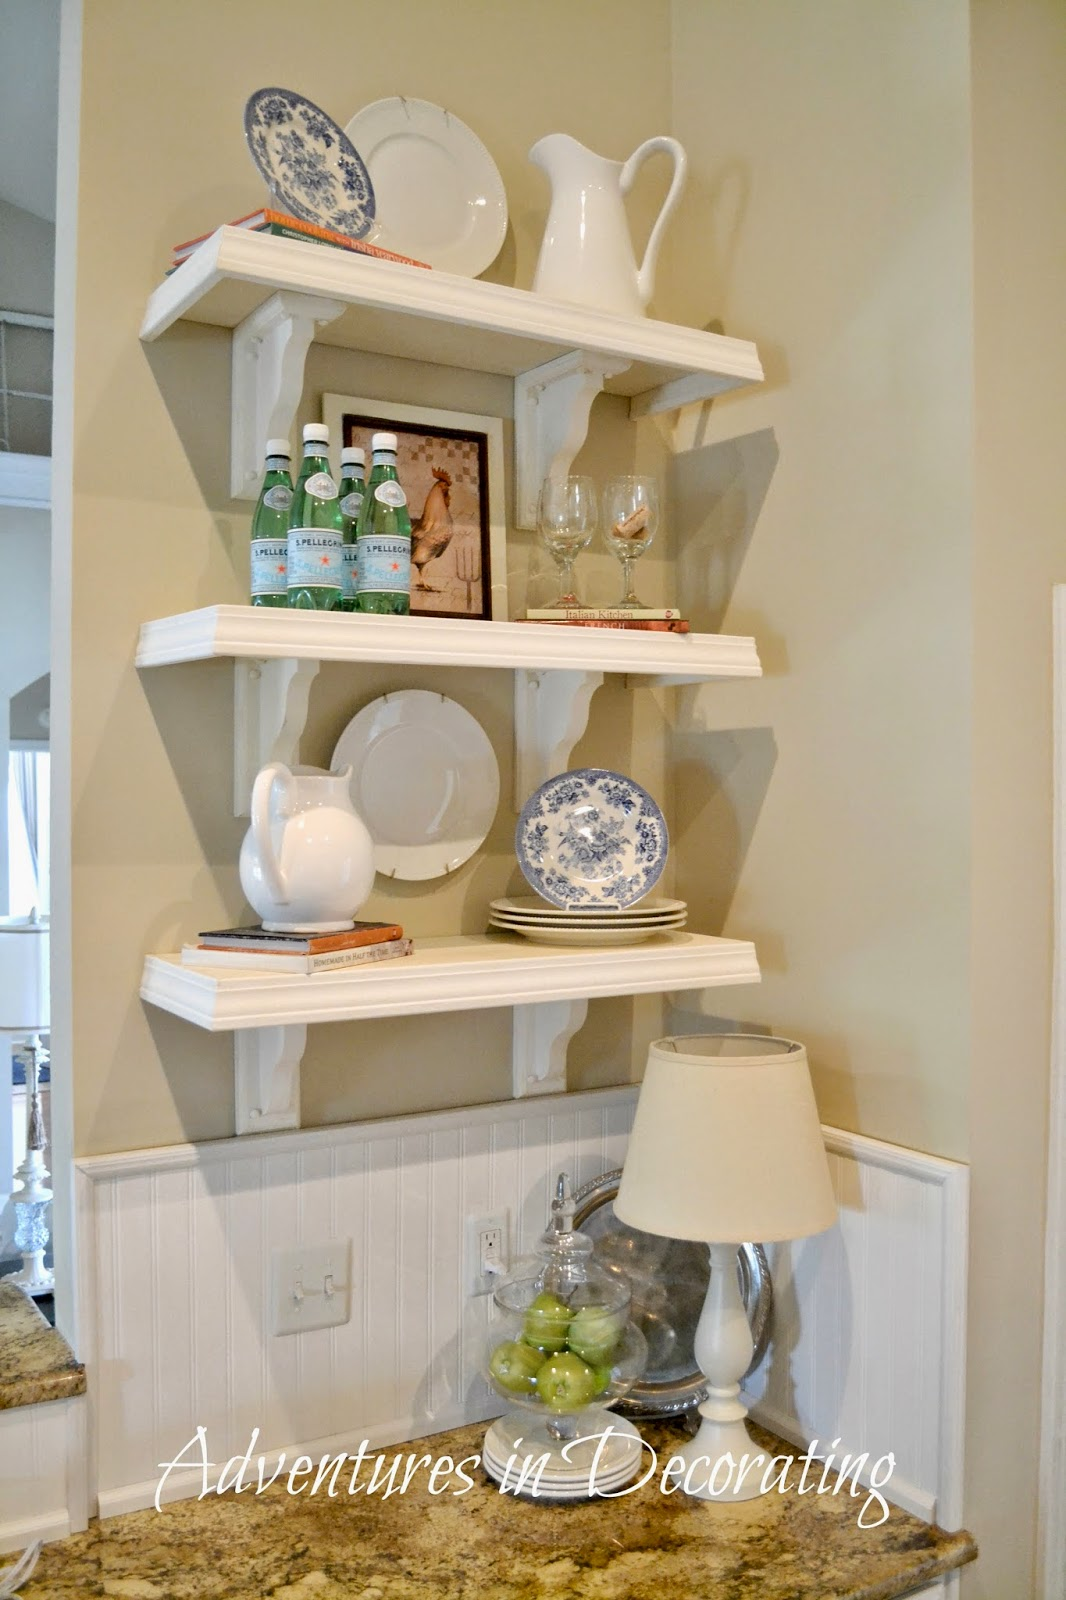 adventures in decorating spring kitchen shelves